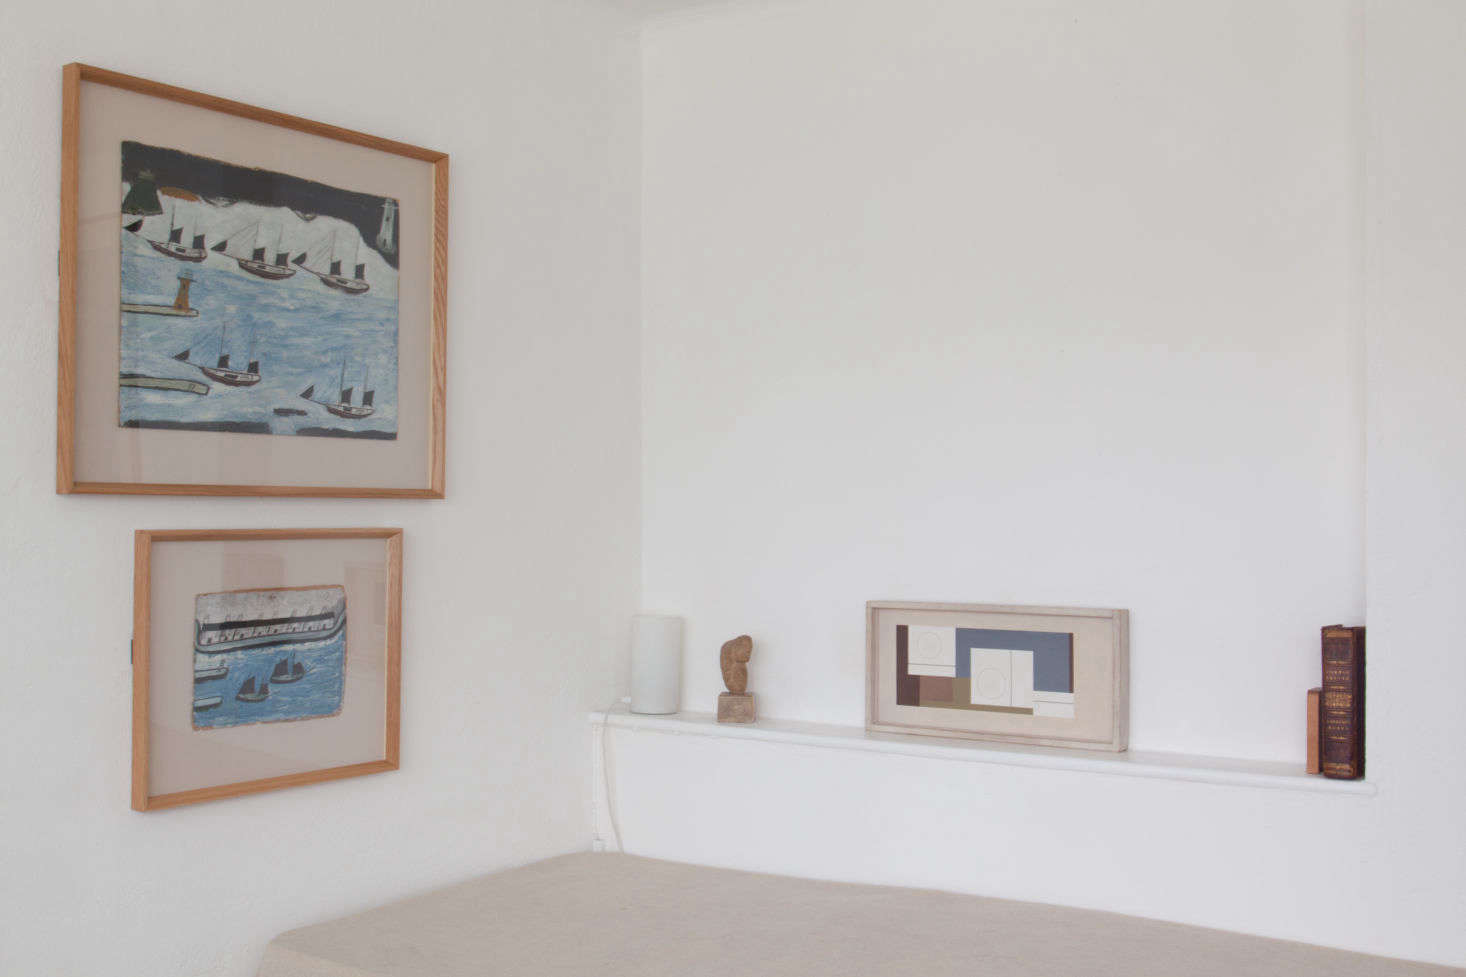 Propped on the shelf next to the twin bed is the Ben Nicholson 4src=